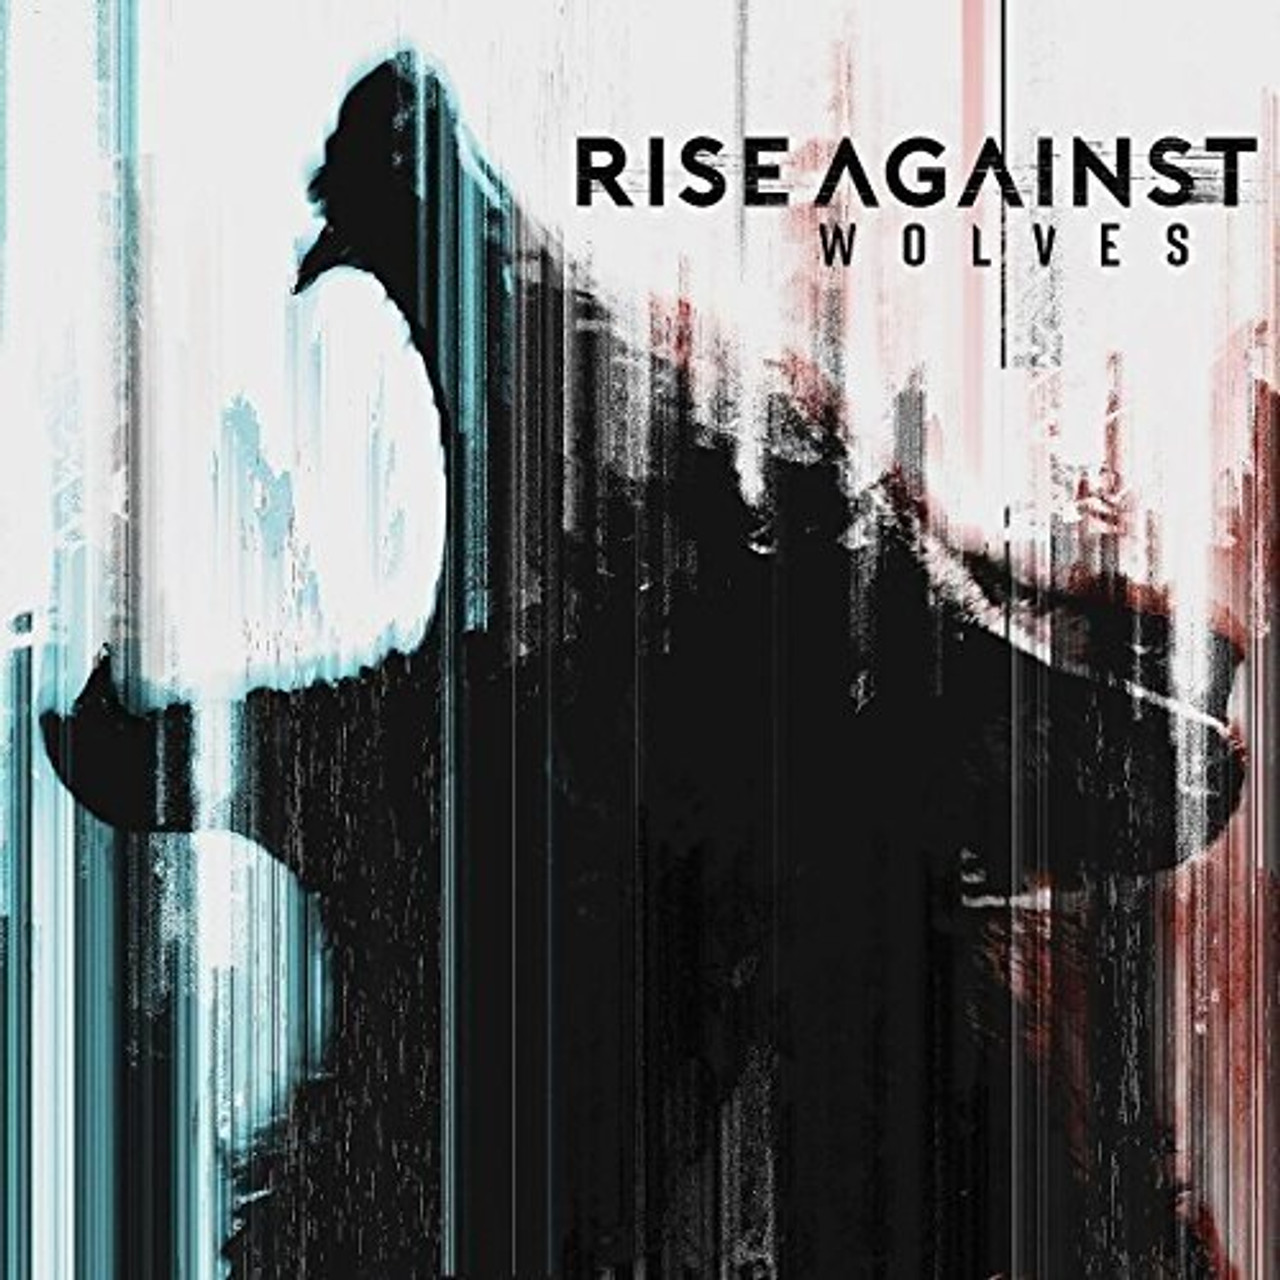 RISE AGAINST-WOLVES   Vinyl LP-Brand New-Still Sealed